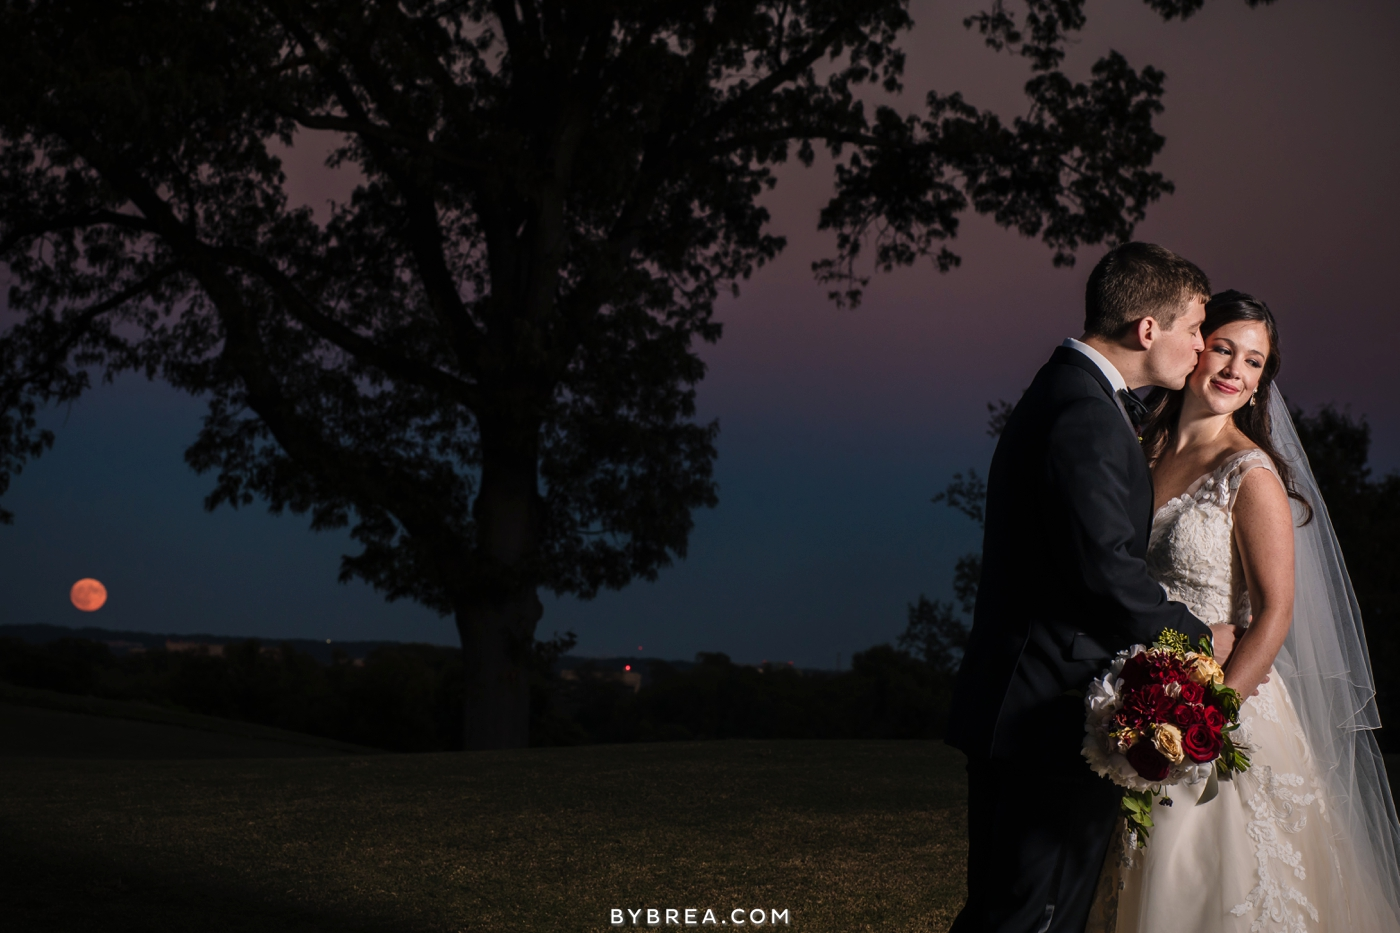 Baltimore wedding night portrait with the moon